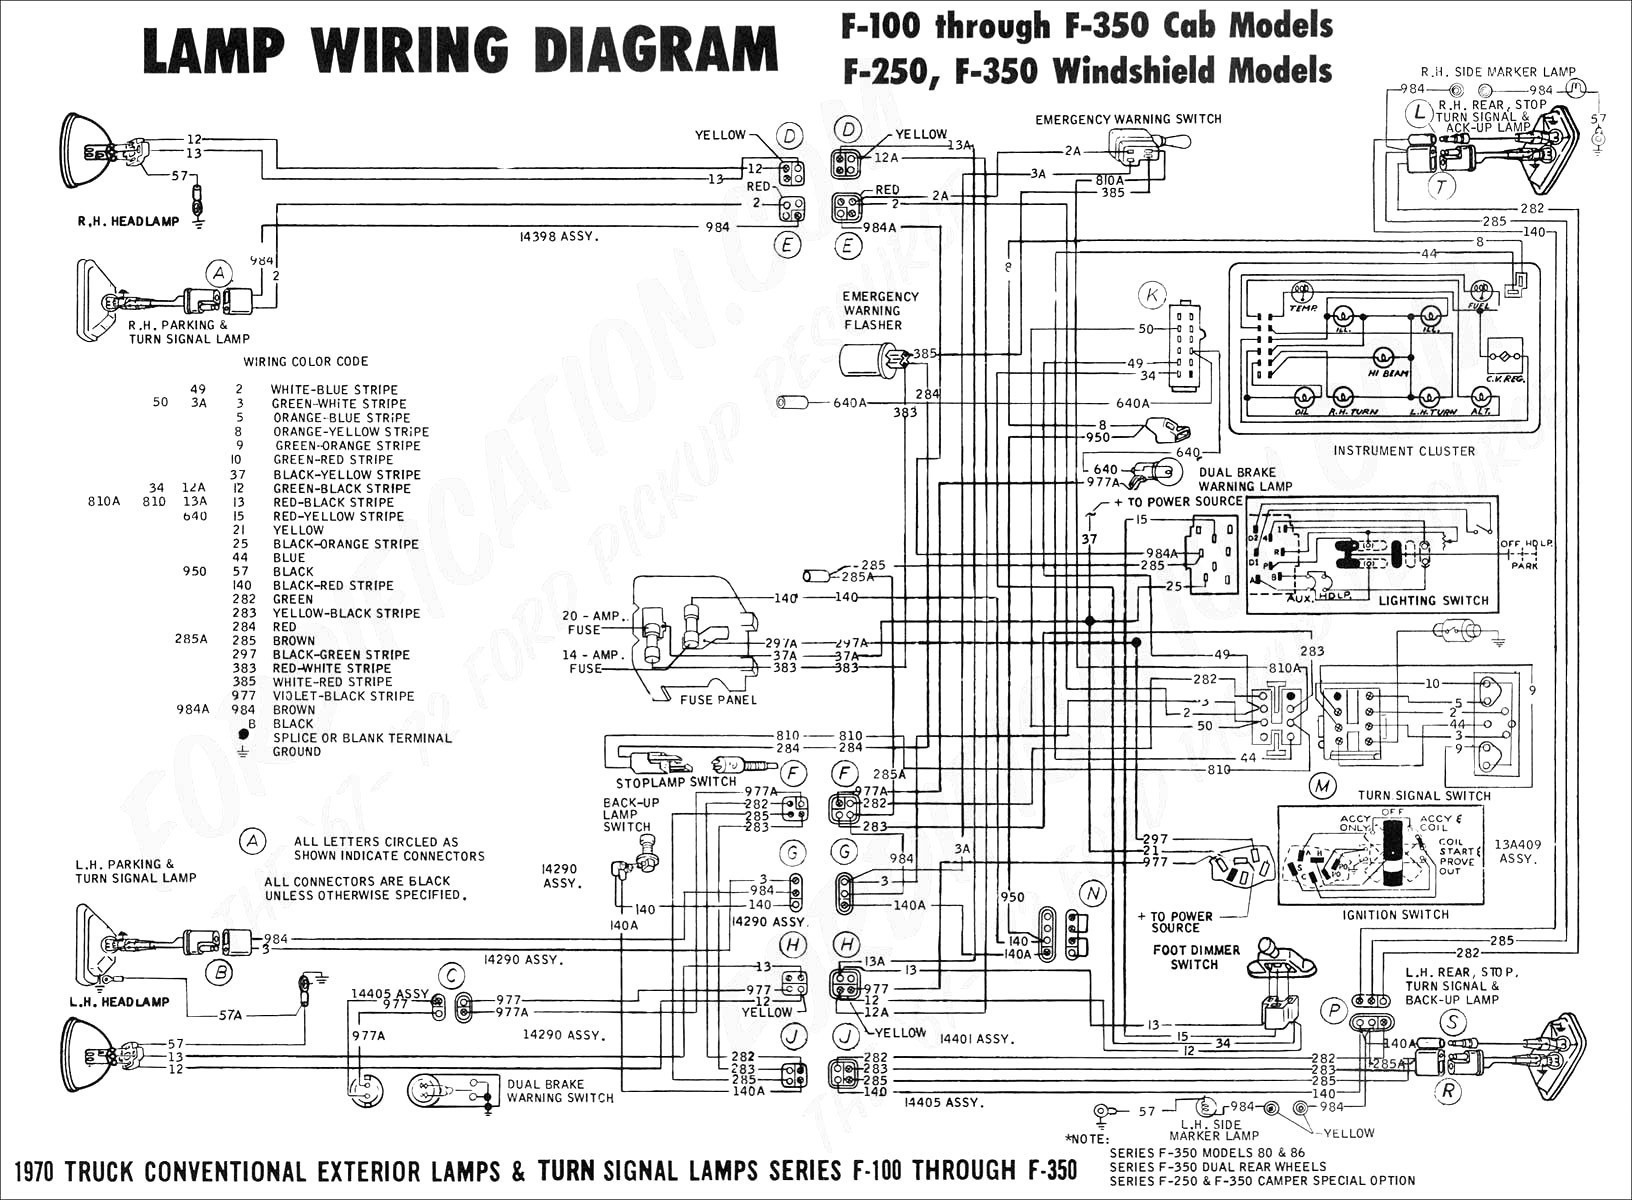 F350 Upfitter Wire Diagram Inspirational